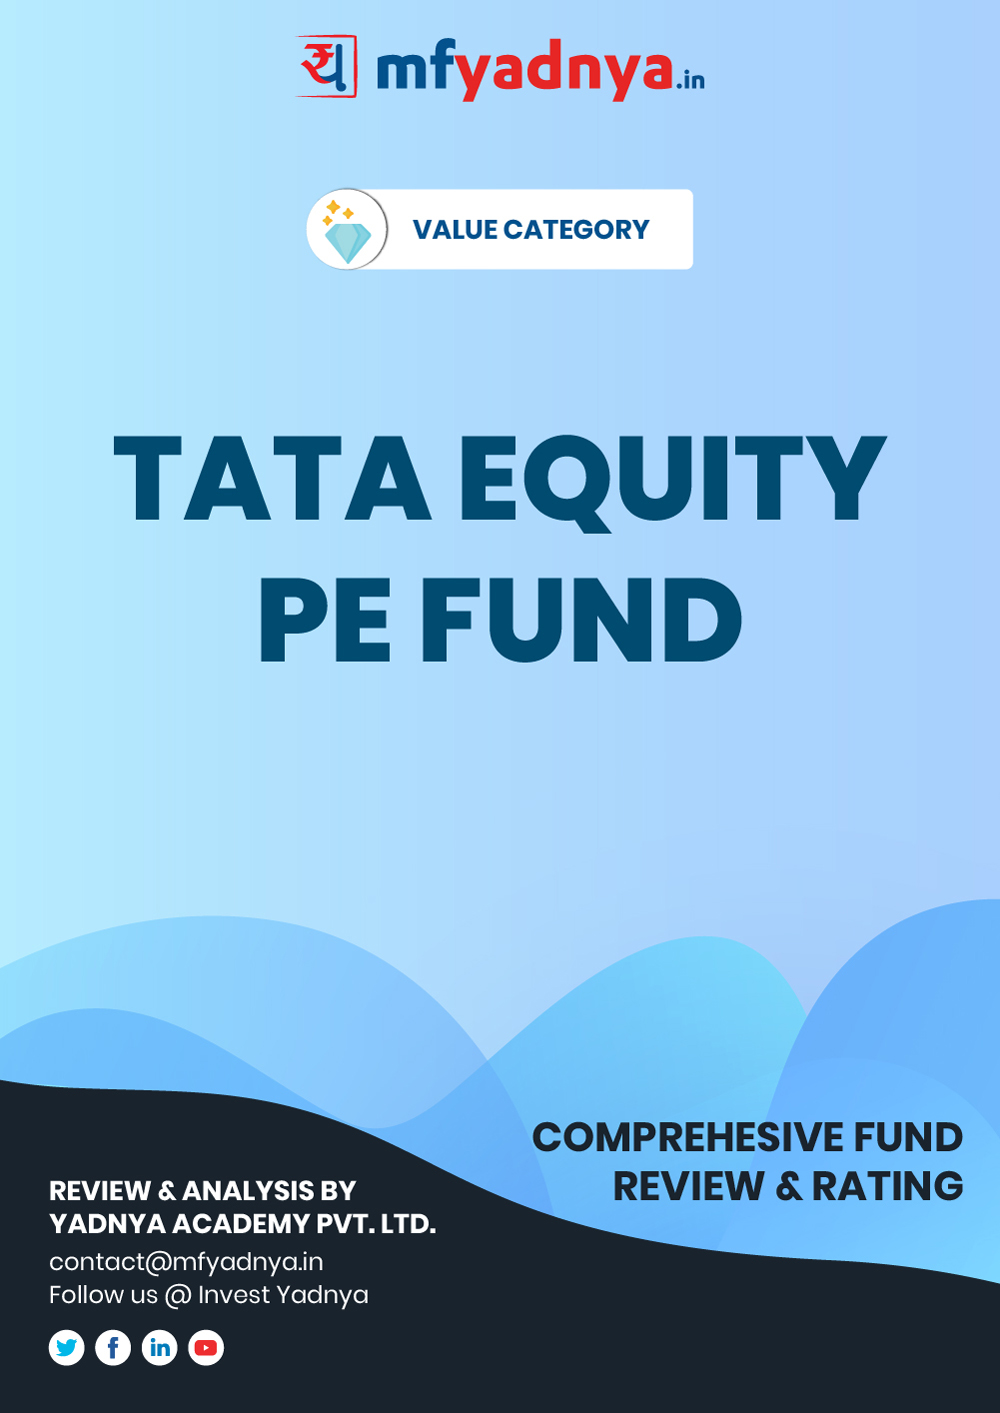 This e-book offers a comprehensive mutual fund review of TATA Equity PE fund of contra category. It reviews Tata equity value fund return, ratio, allocation etc. ✔ Detailed Mutual Fund Analysis ✔ Latest Research Reports